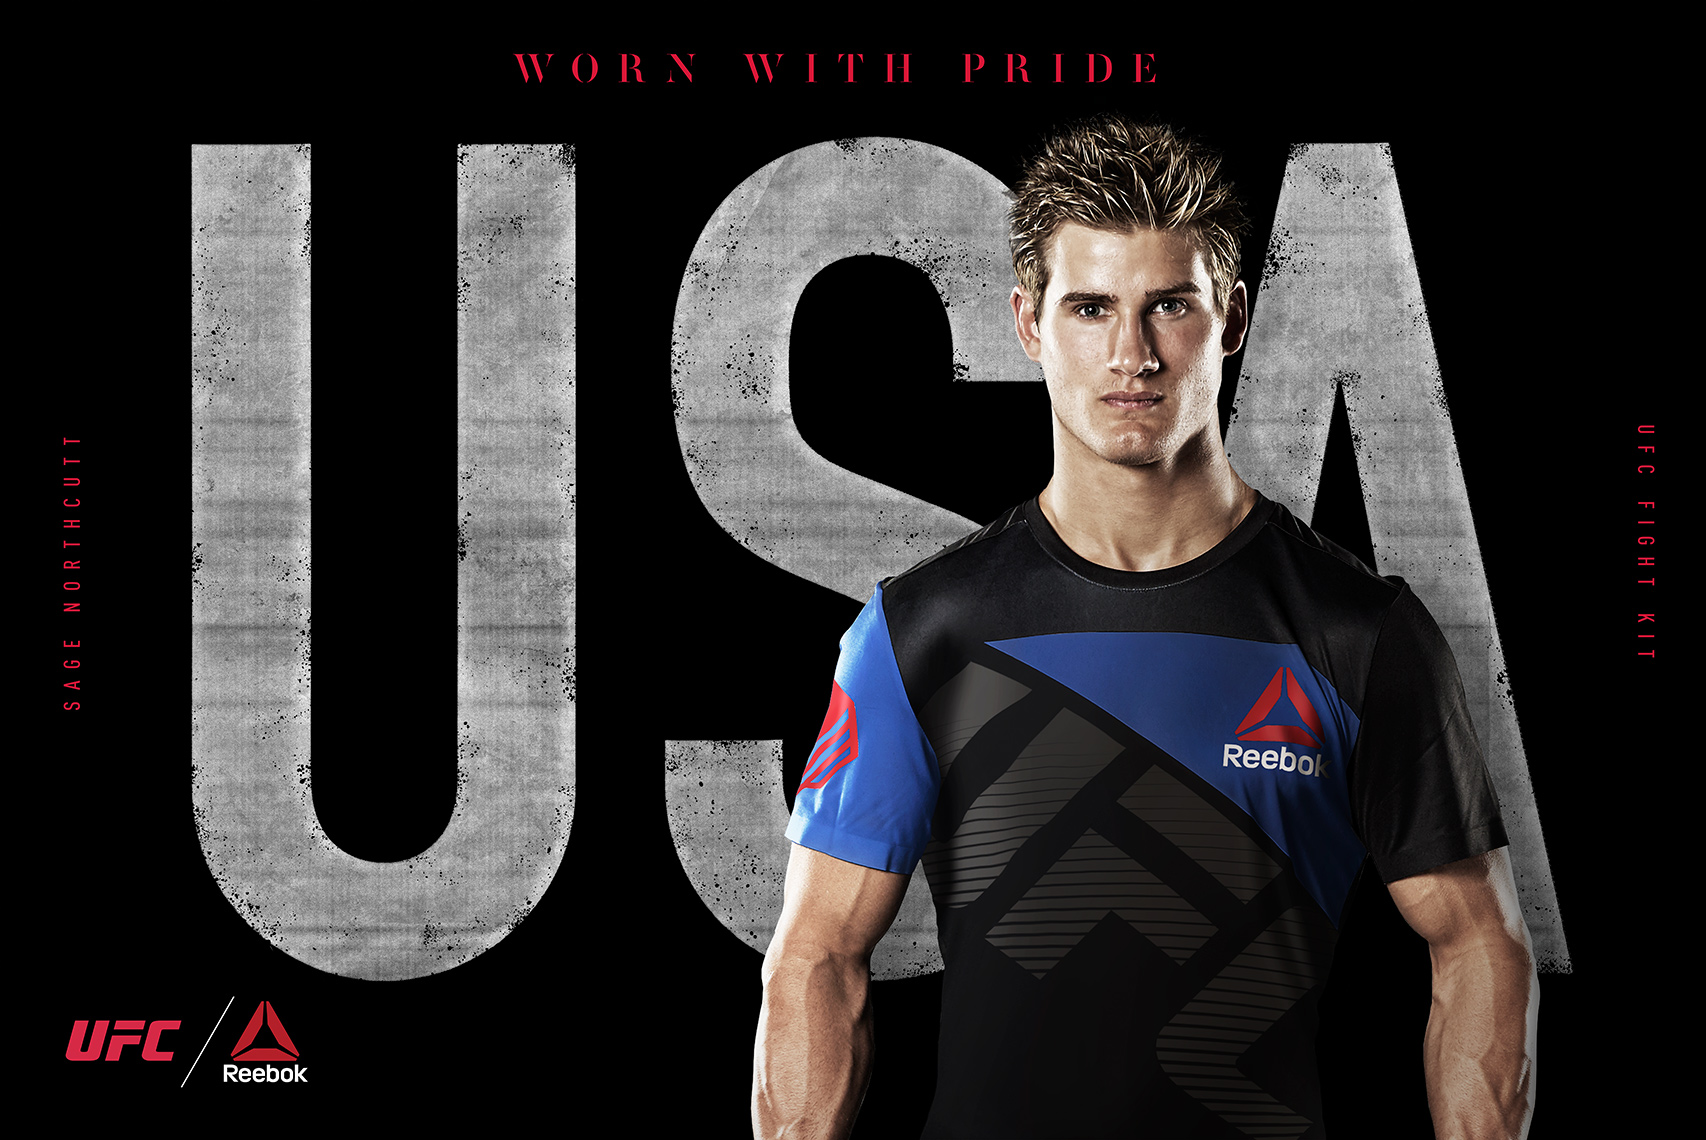 Sage-Northcutt-Reebok-Advertising_COMM